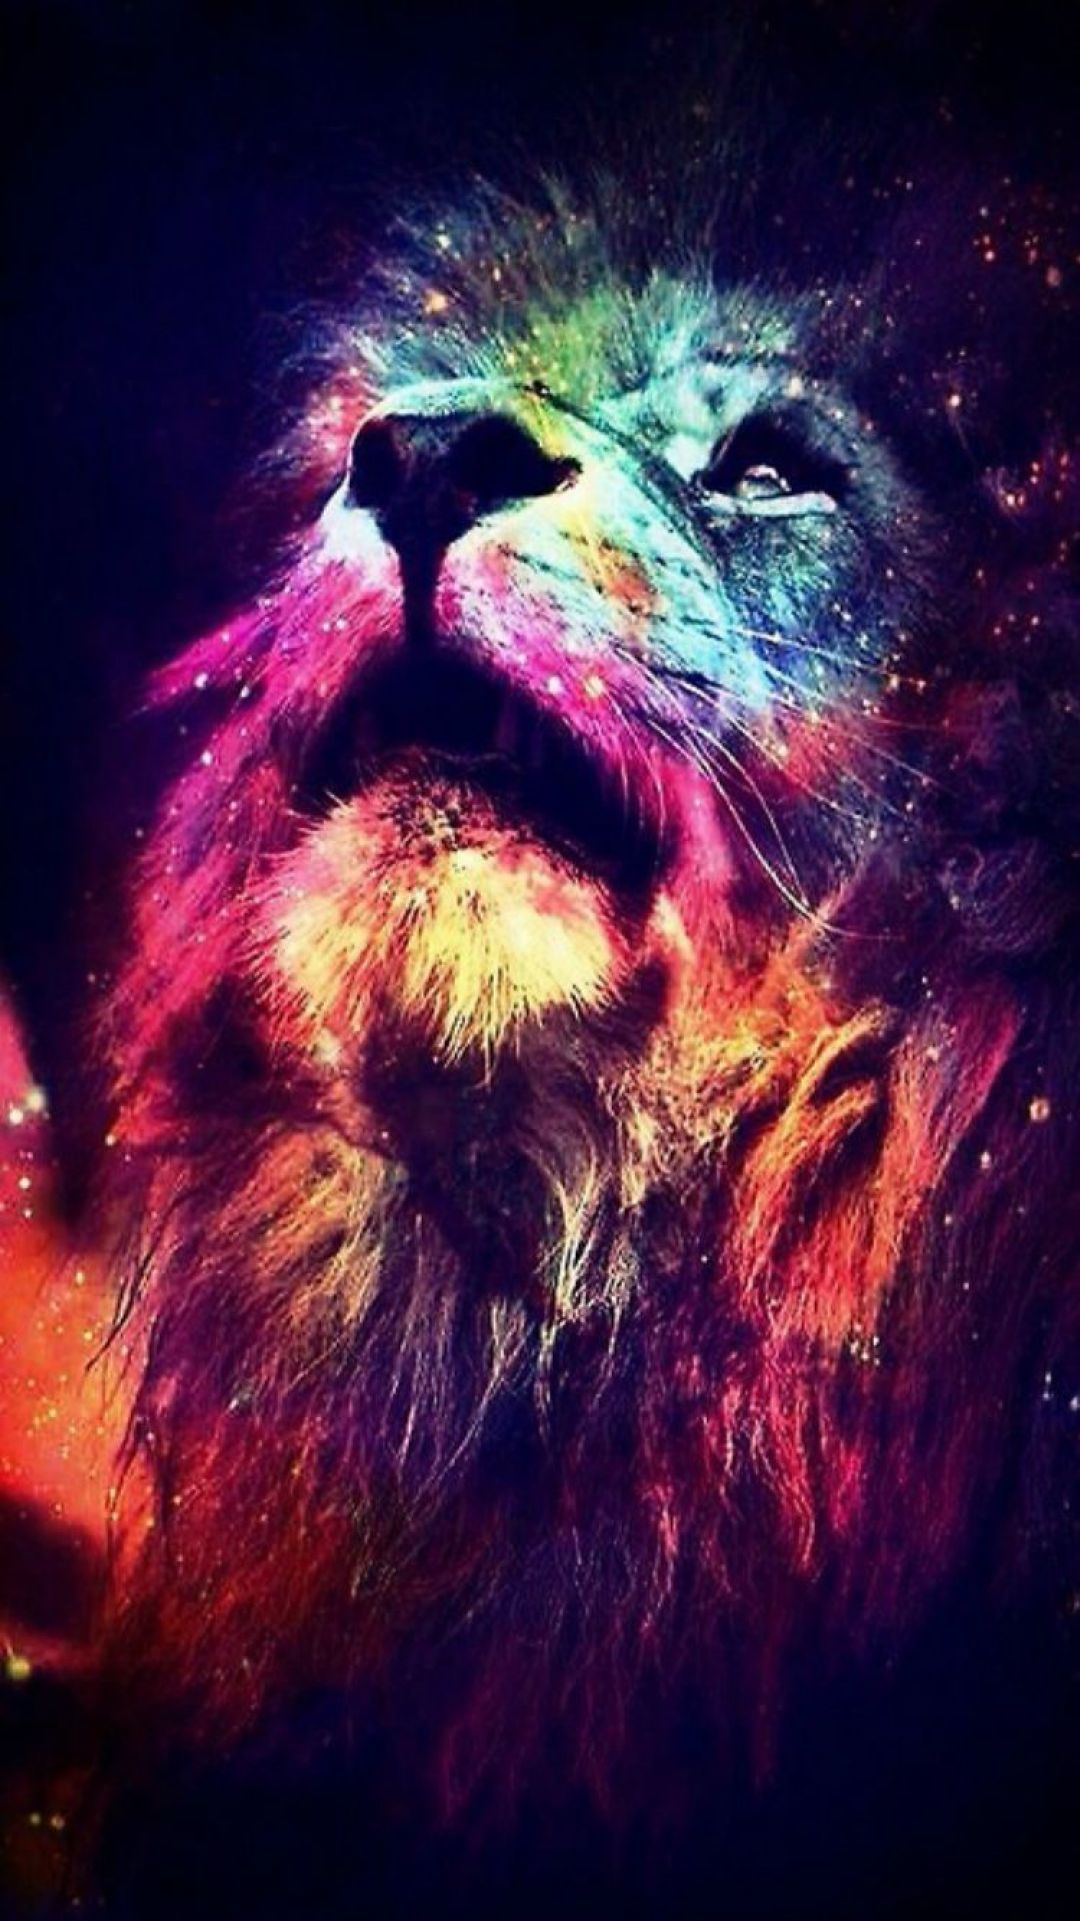 Lion Iphone Android Iphone Desktop Hd Backgrounds Wallpapers 1080p 4k 124872 Hdwallpapers Androidw Hipster Wallpaper Lion Wallpaper Abstract Lion